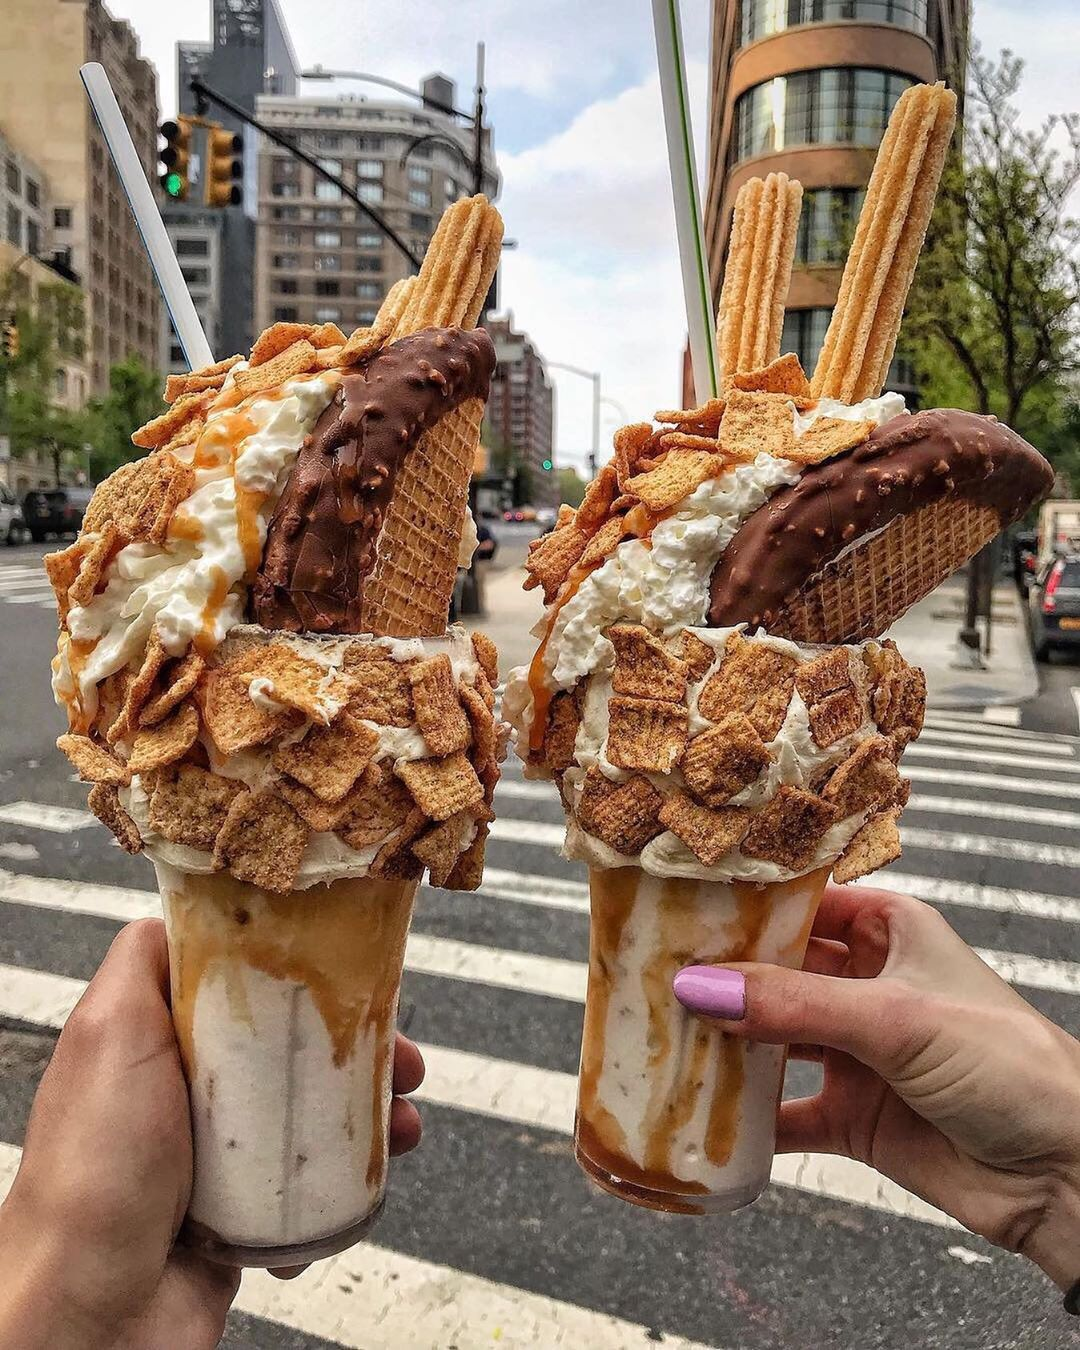 The best dessert spots in NYC. new York City is known for great food, find out where you can go to get something sweet. From ice cream . to pies, theres something here for everyone. Best desserts in Soho! Foodie travel NYC #foodietravel   #nyc #newyork #newyorkcity #usa #food #foodie #travel #wanderlust #desserts